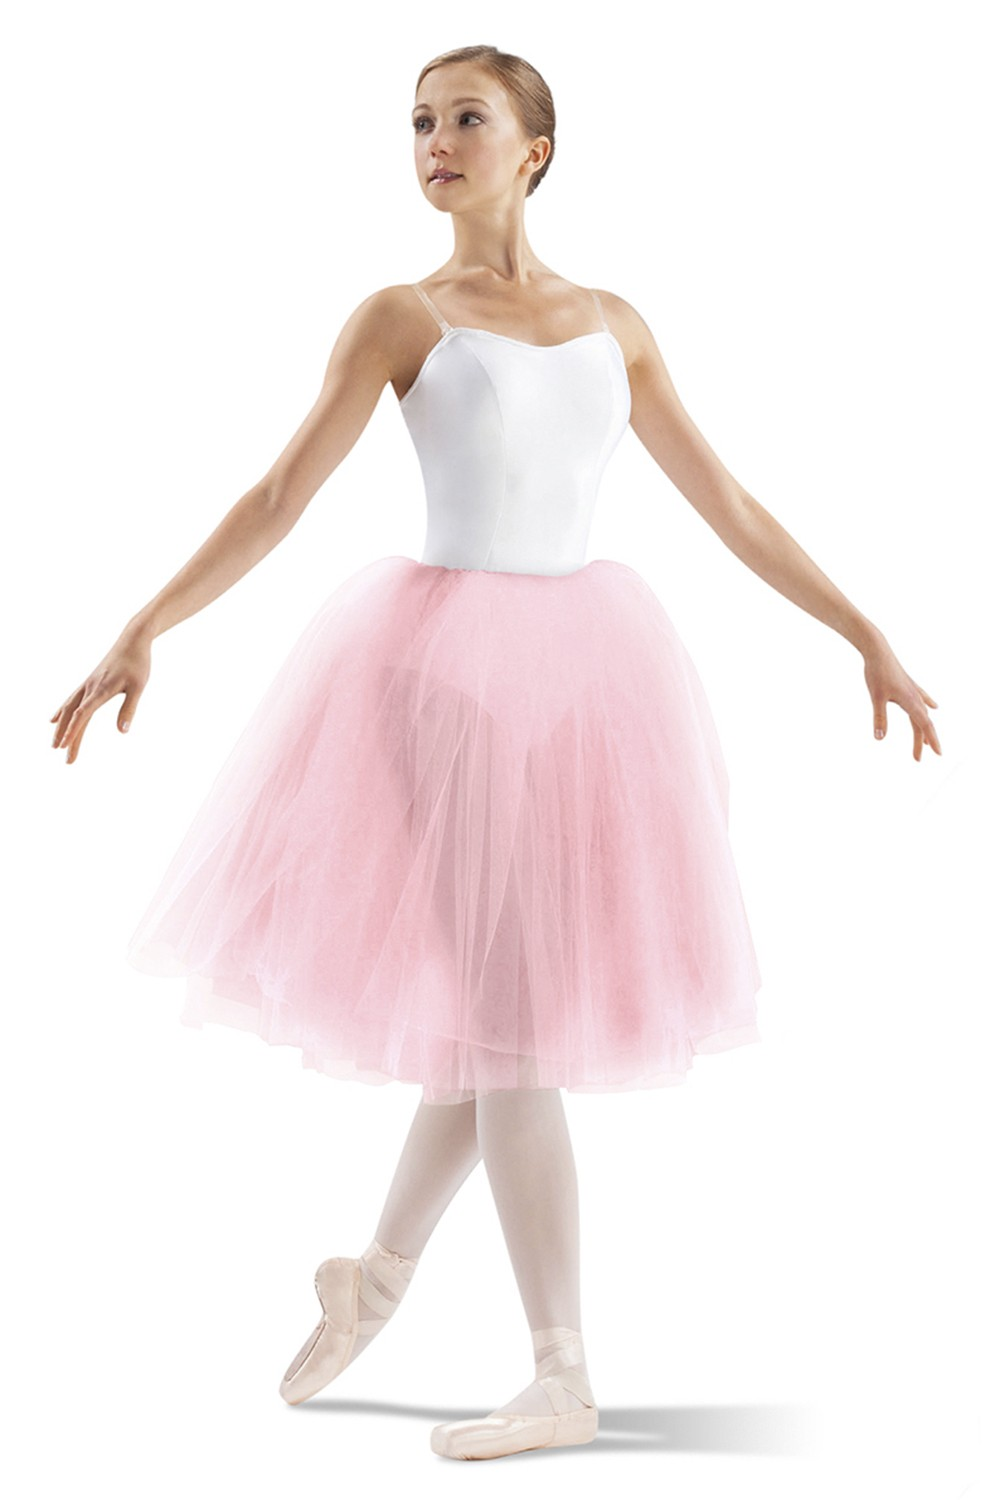 Ld137lt Tutu Women's Dance Skirts